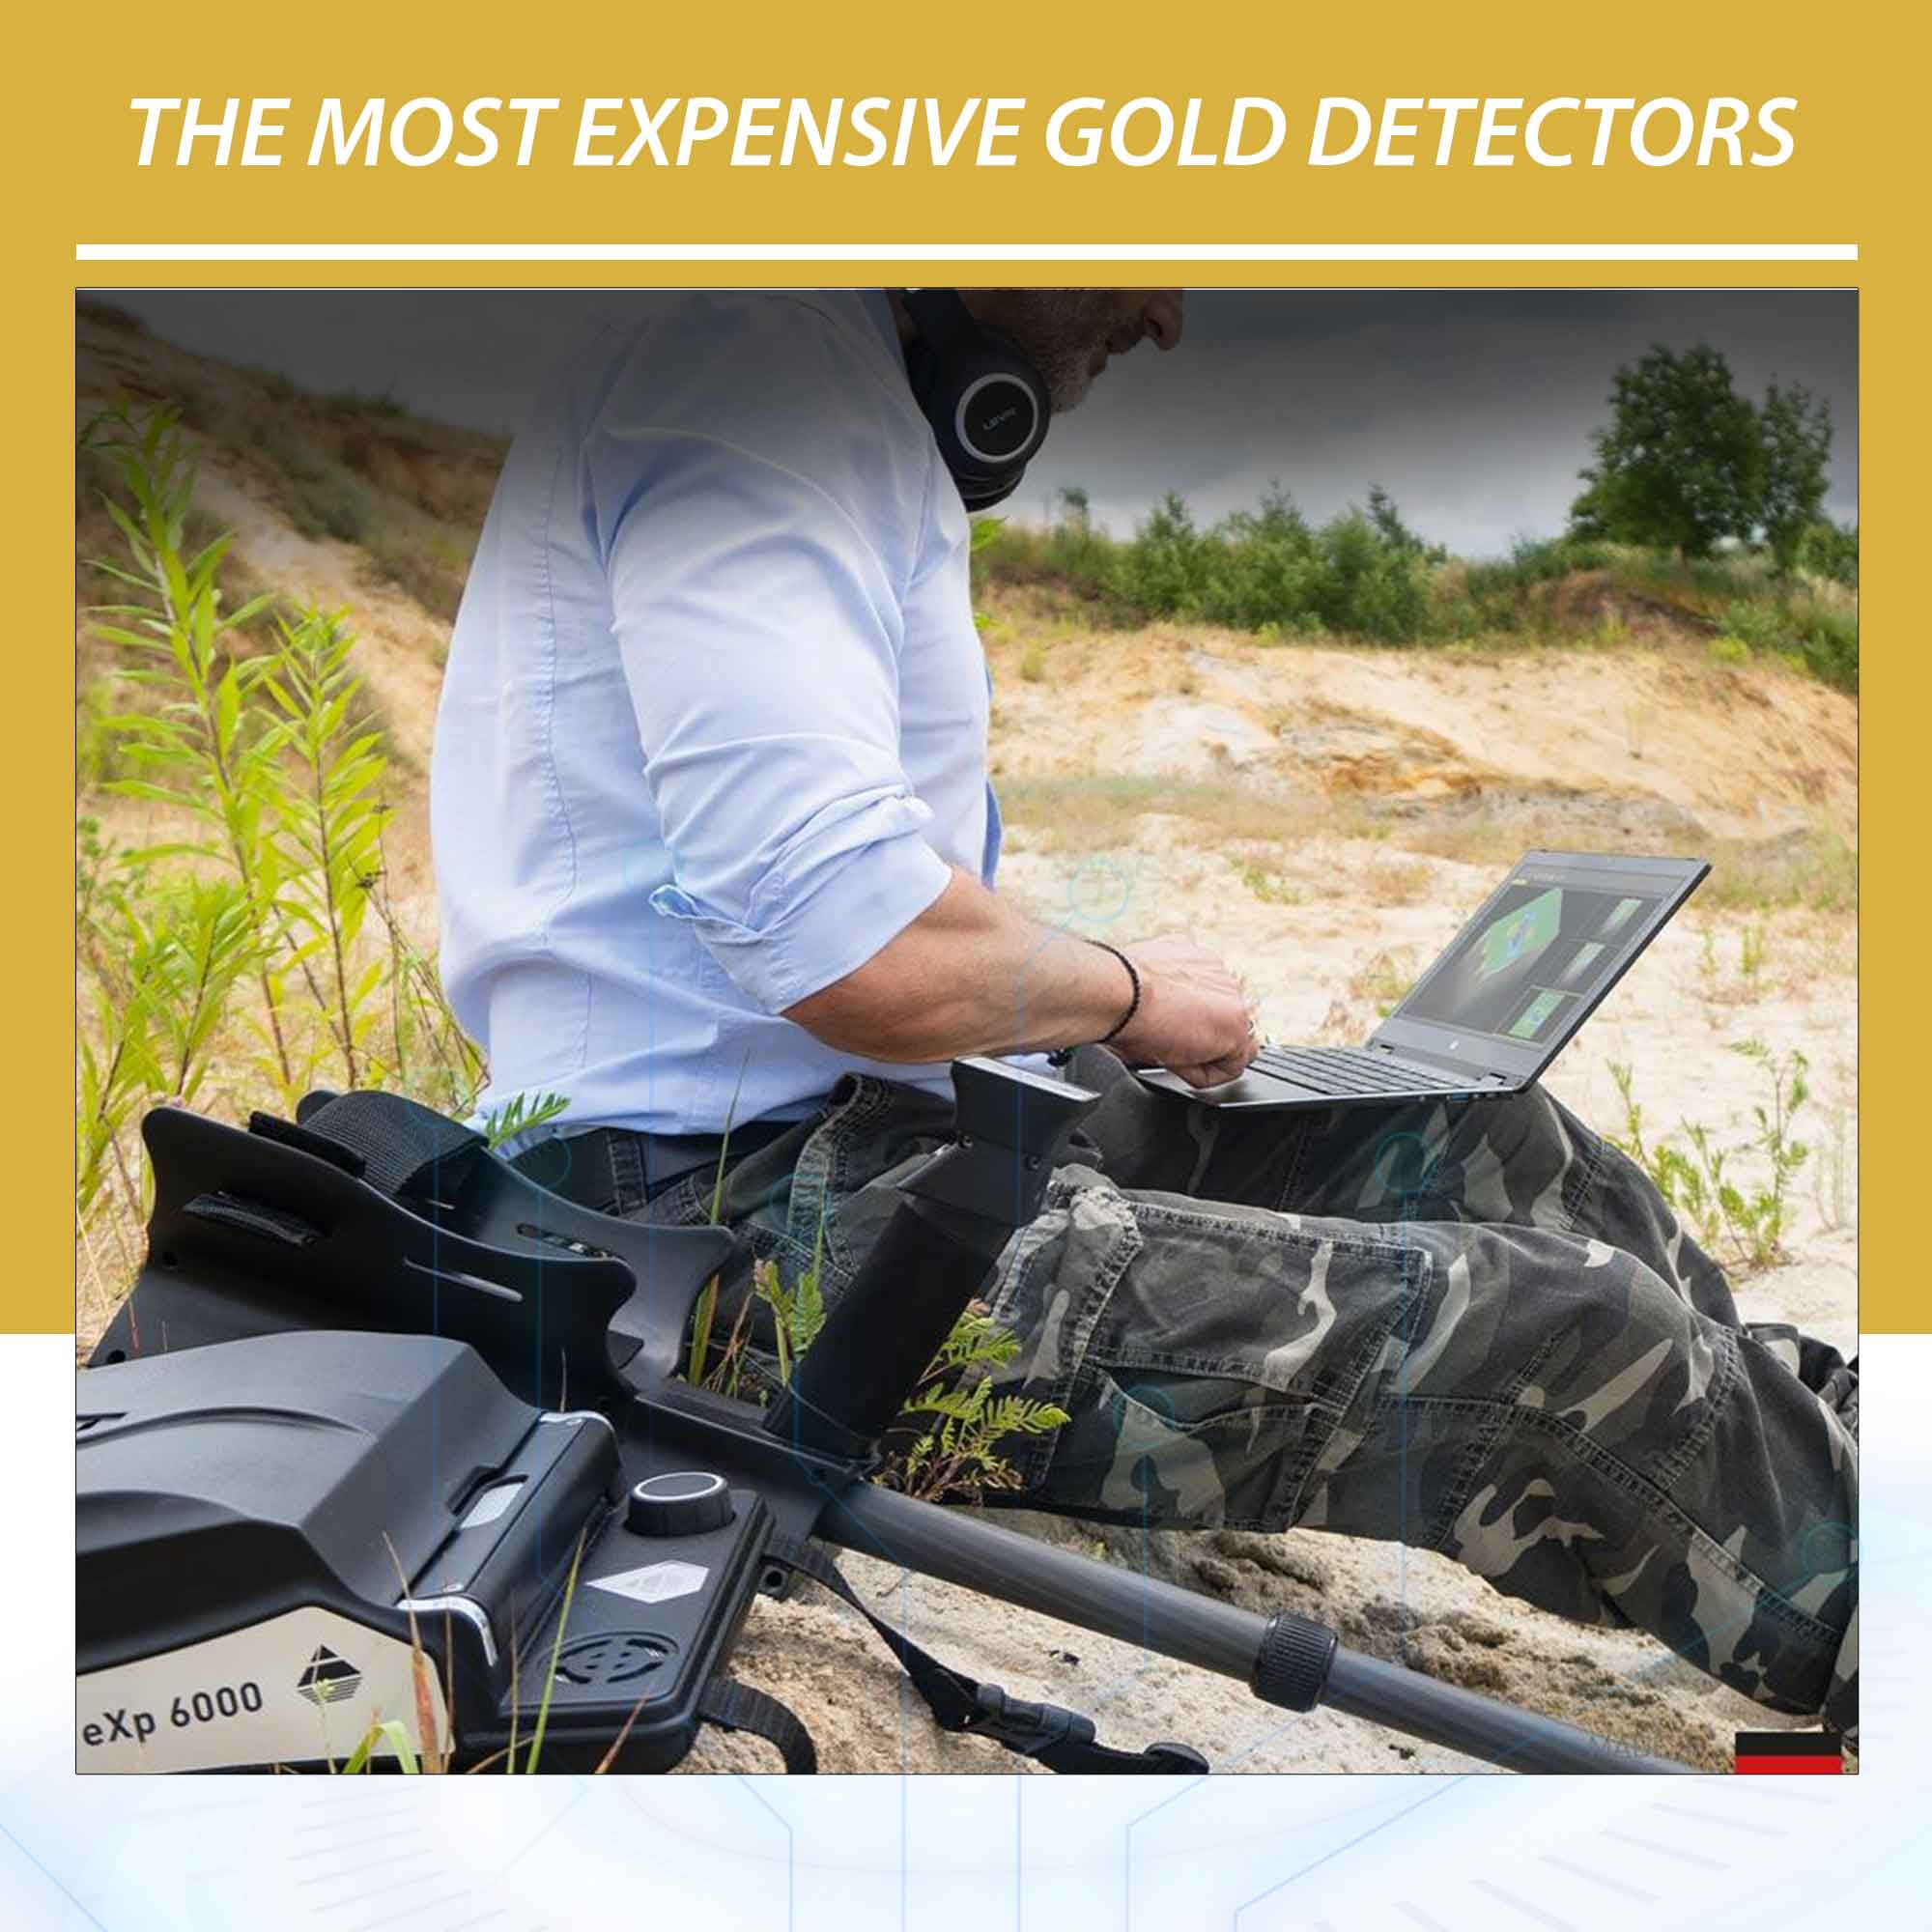 the most expensive gold detectors 2021